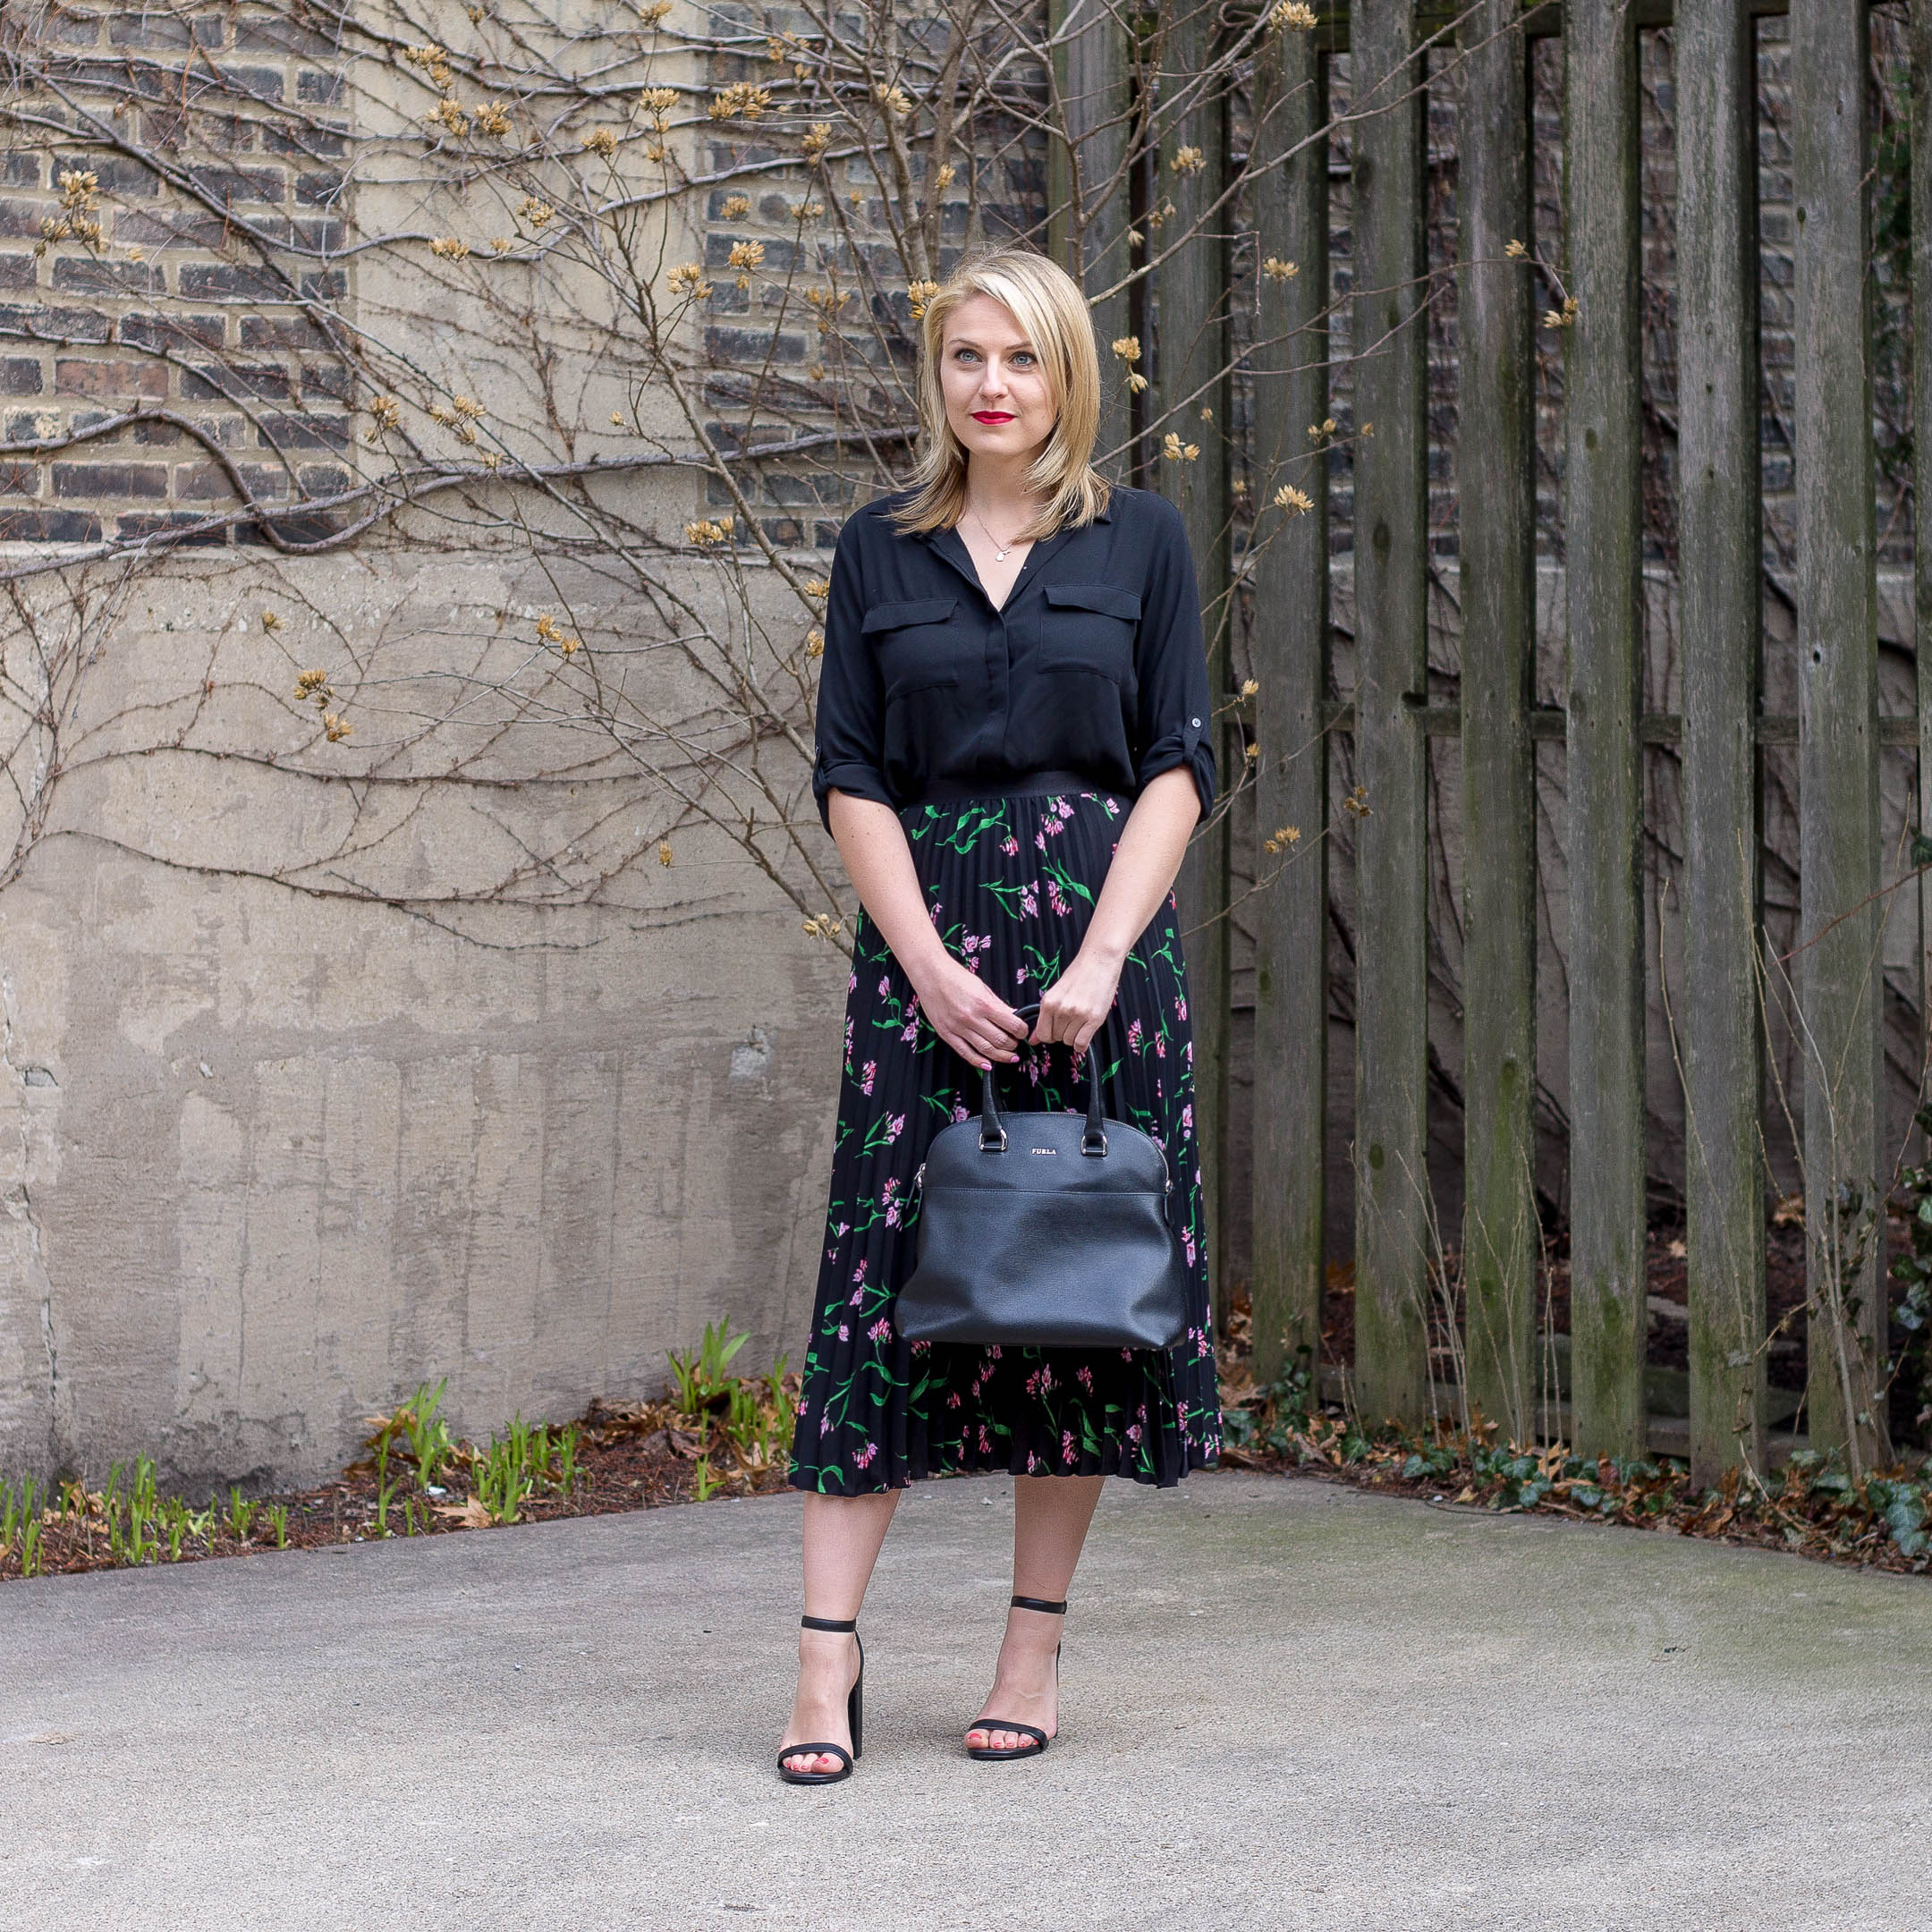 A simple blouse and midi skirt outfit for the spring season work place